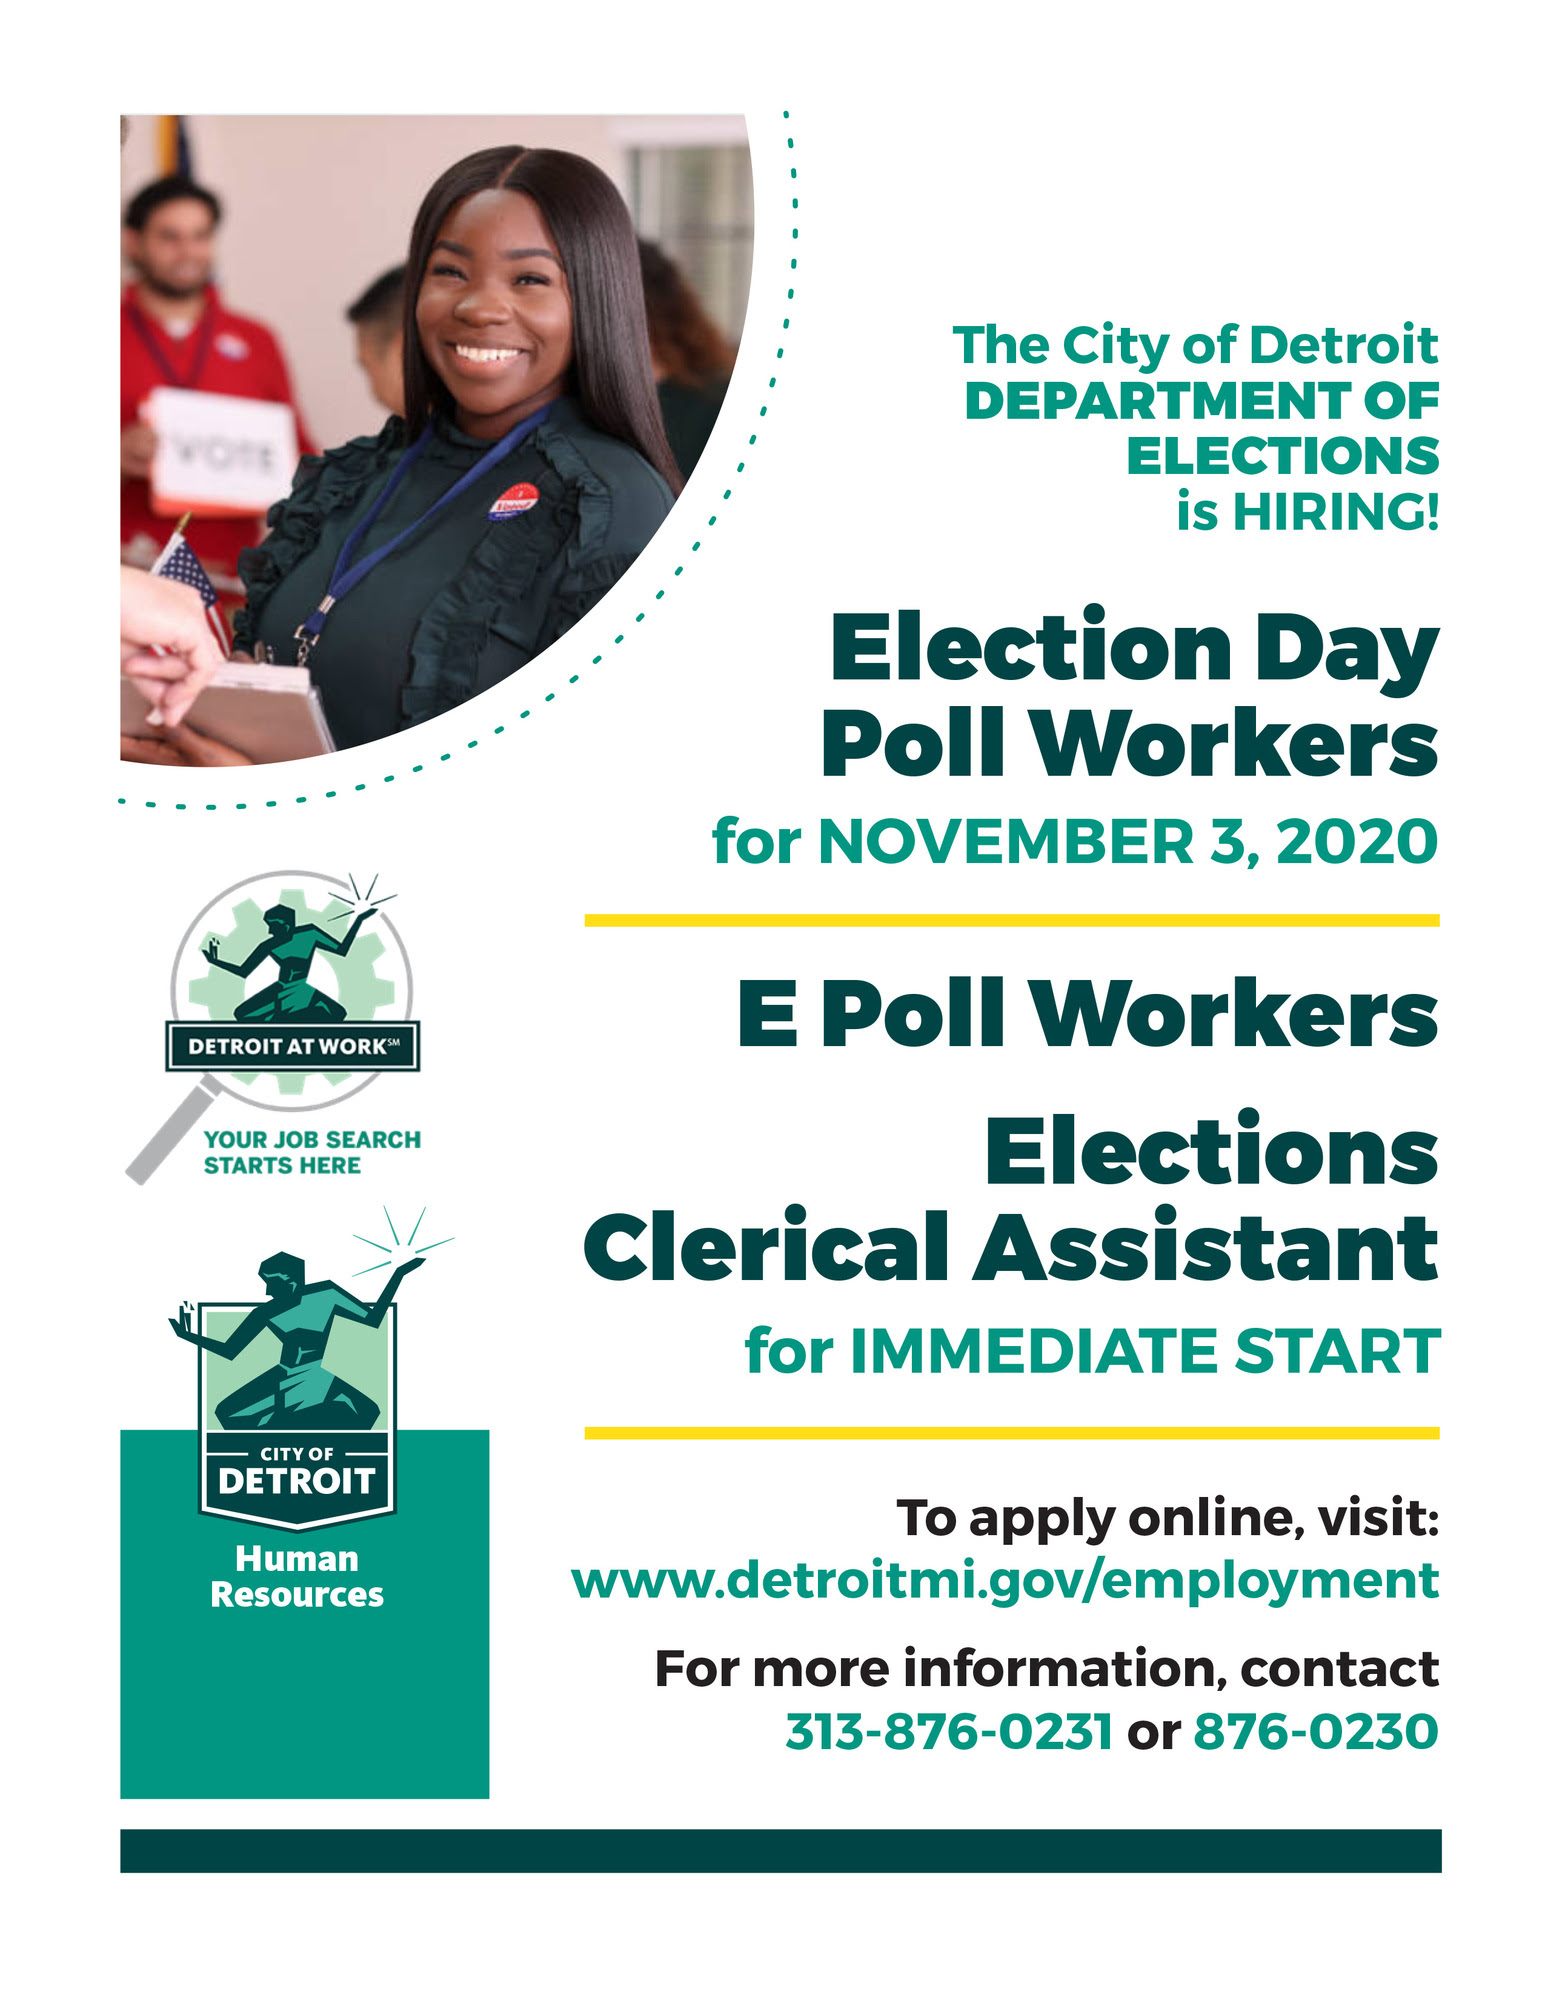 City of Detroit Needs Election Workers